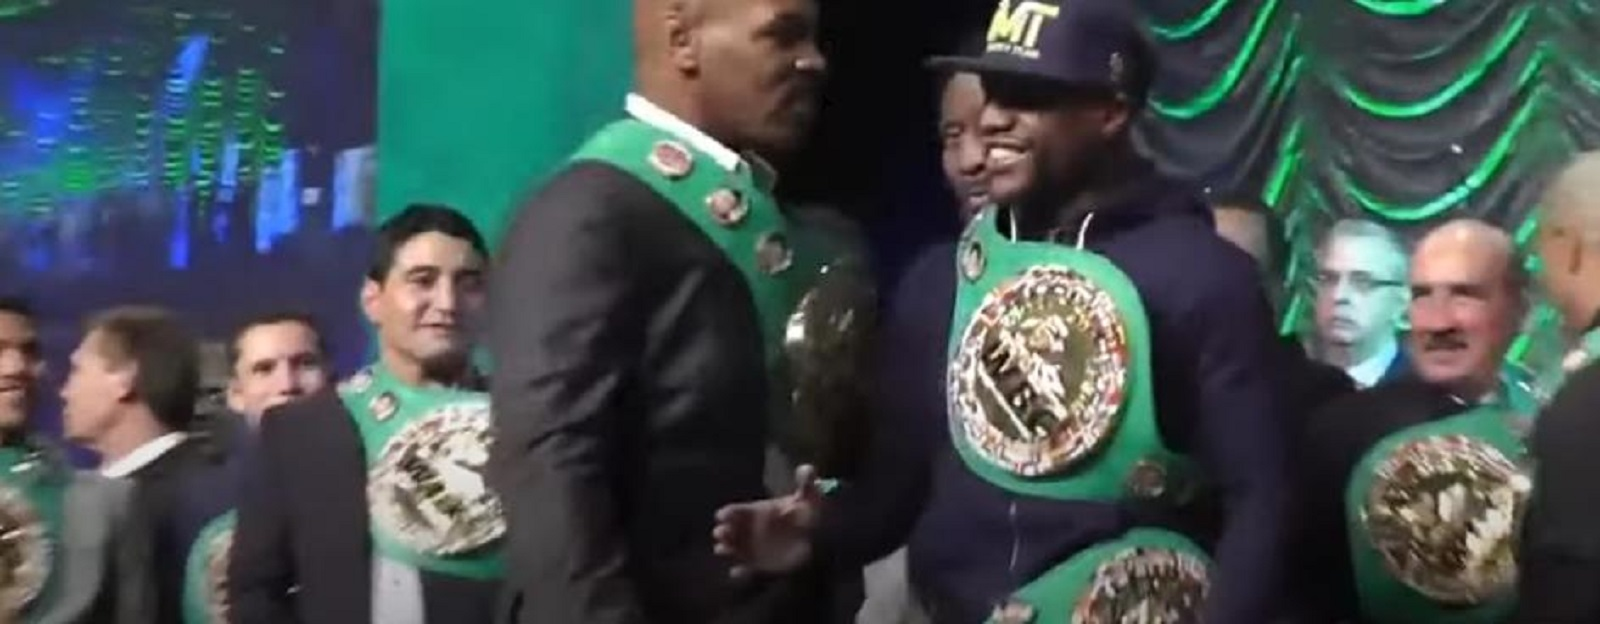 Manager Reveals How Tyson Gave Mayweather His Big Break Early On